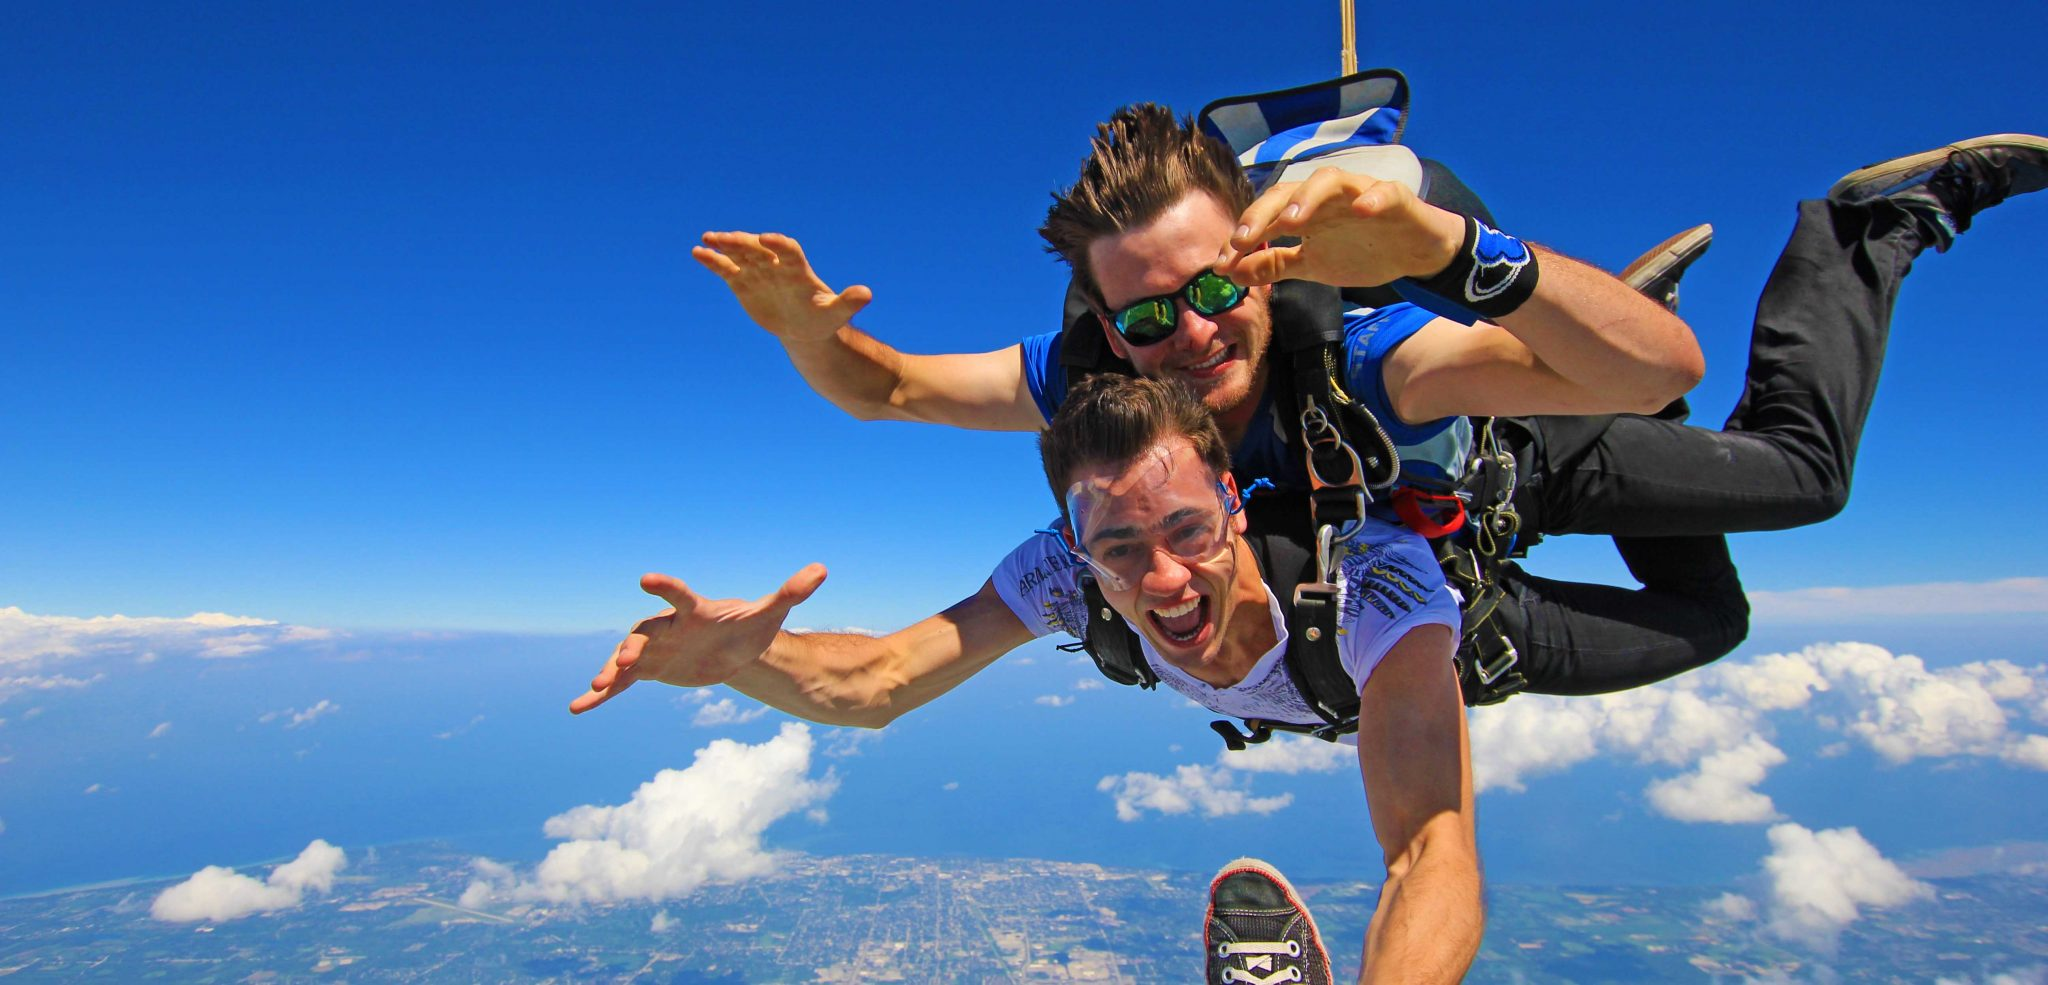 Skydiving in northern michigan